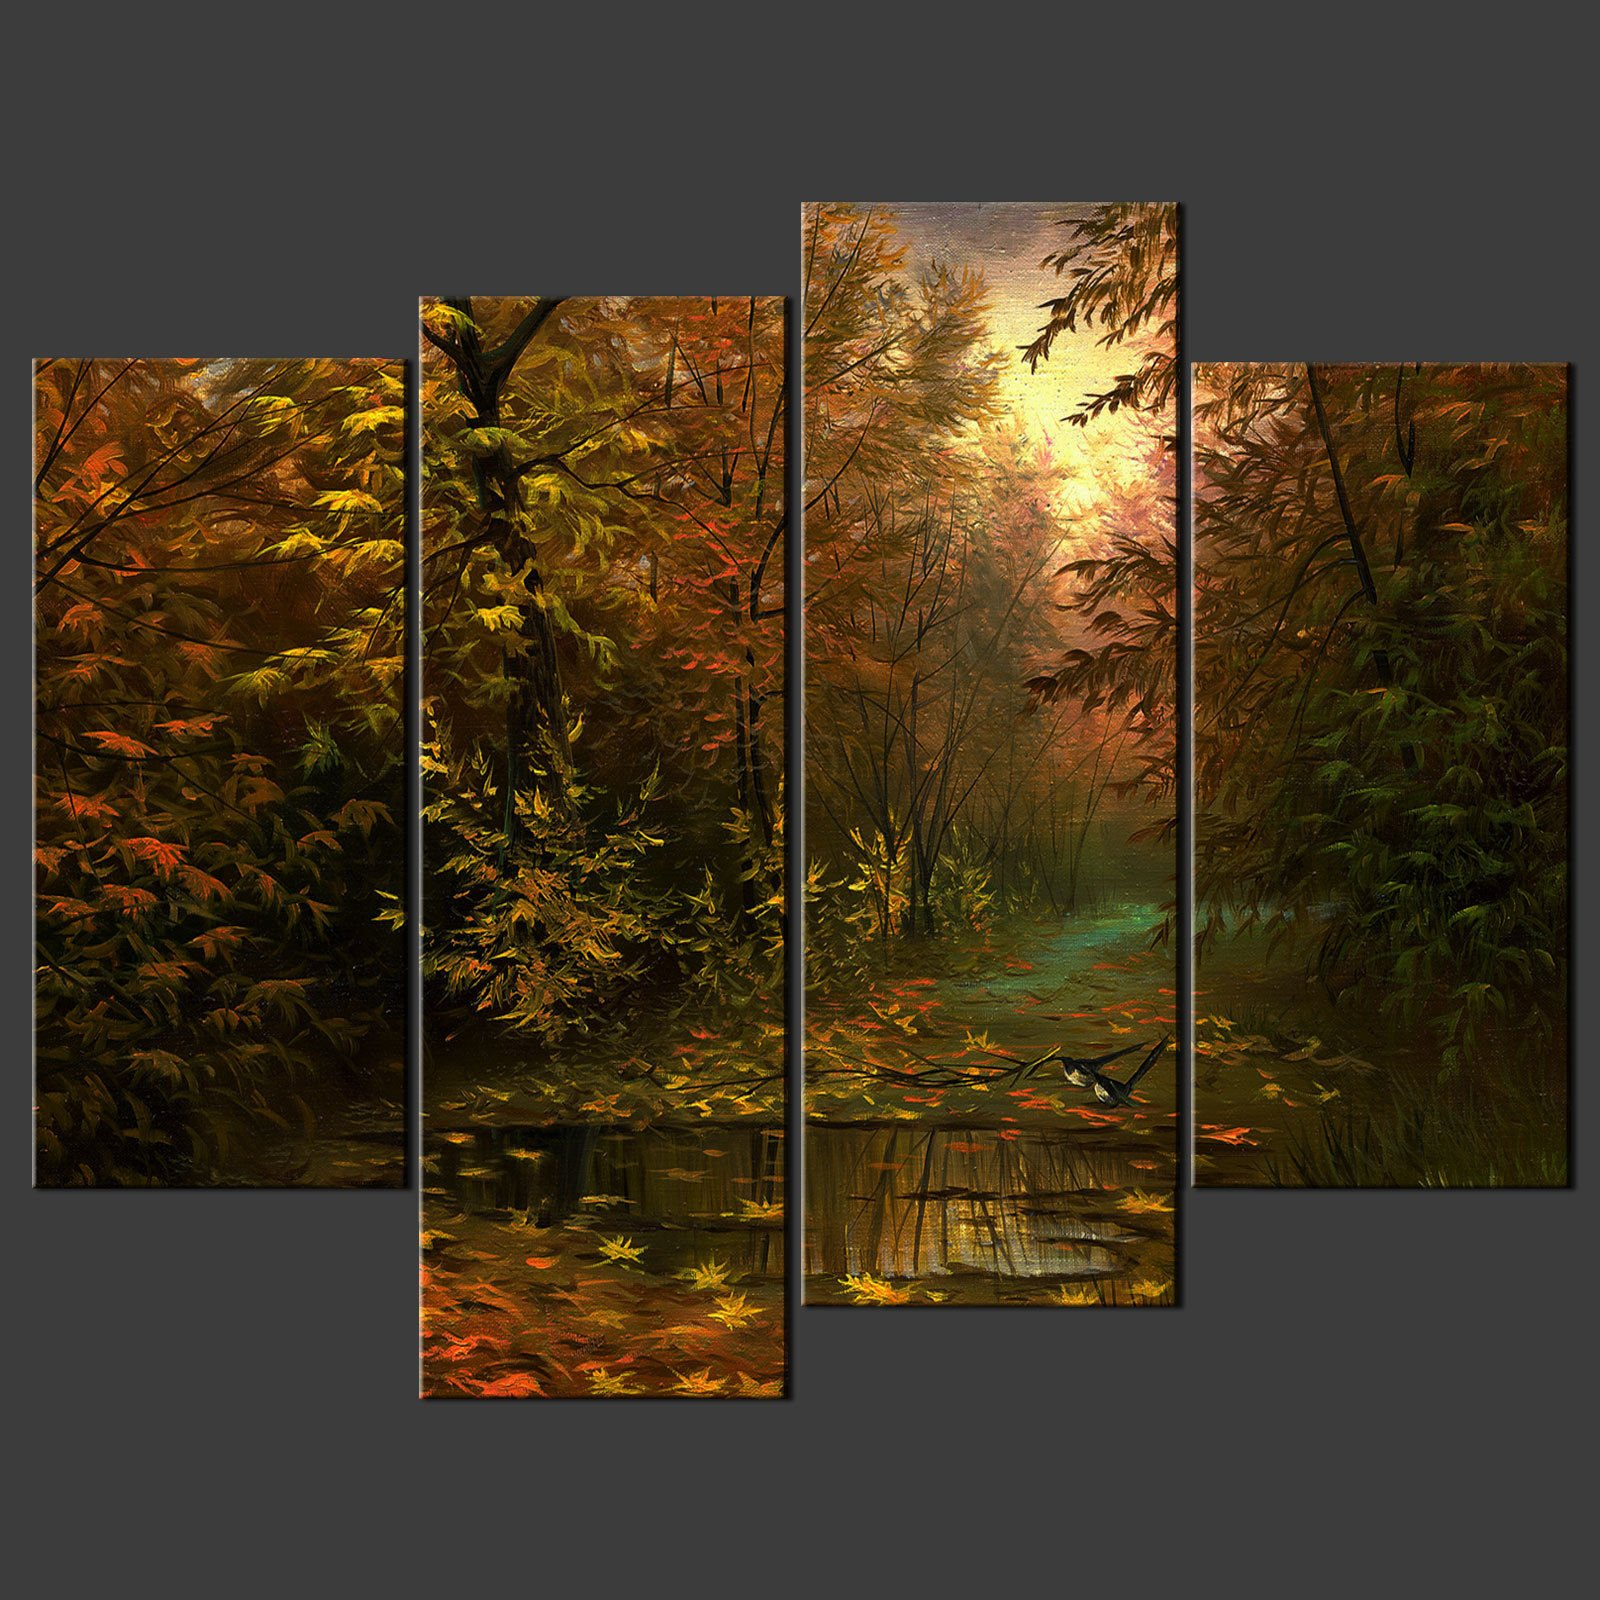 Wall Art Split Canvas : Birds in forest split canvas wall art pictures prints